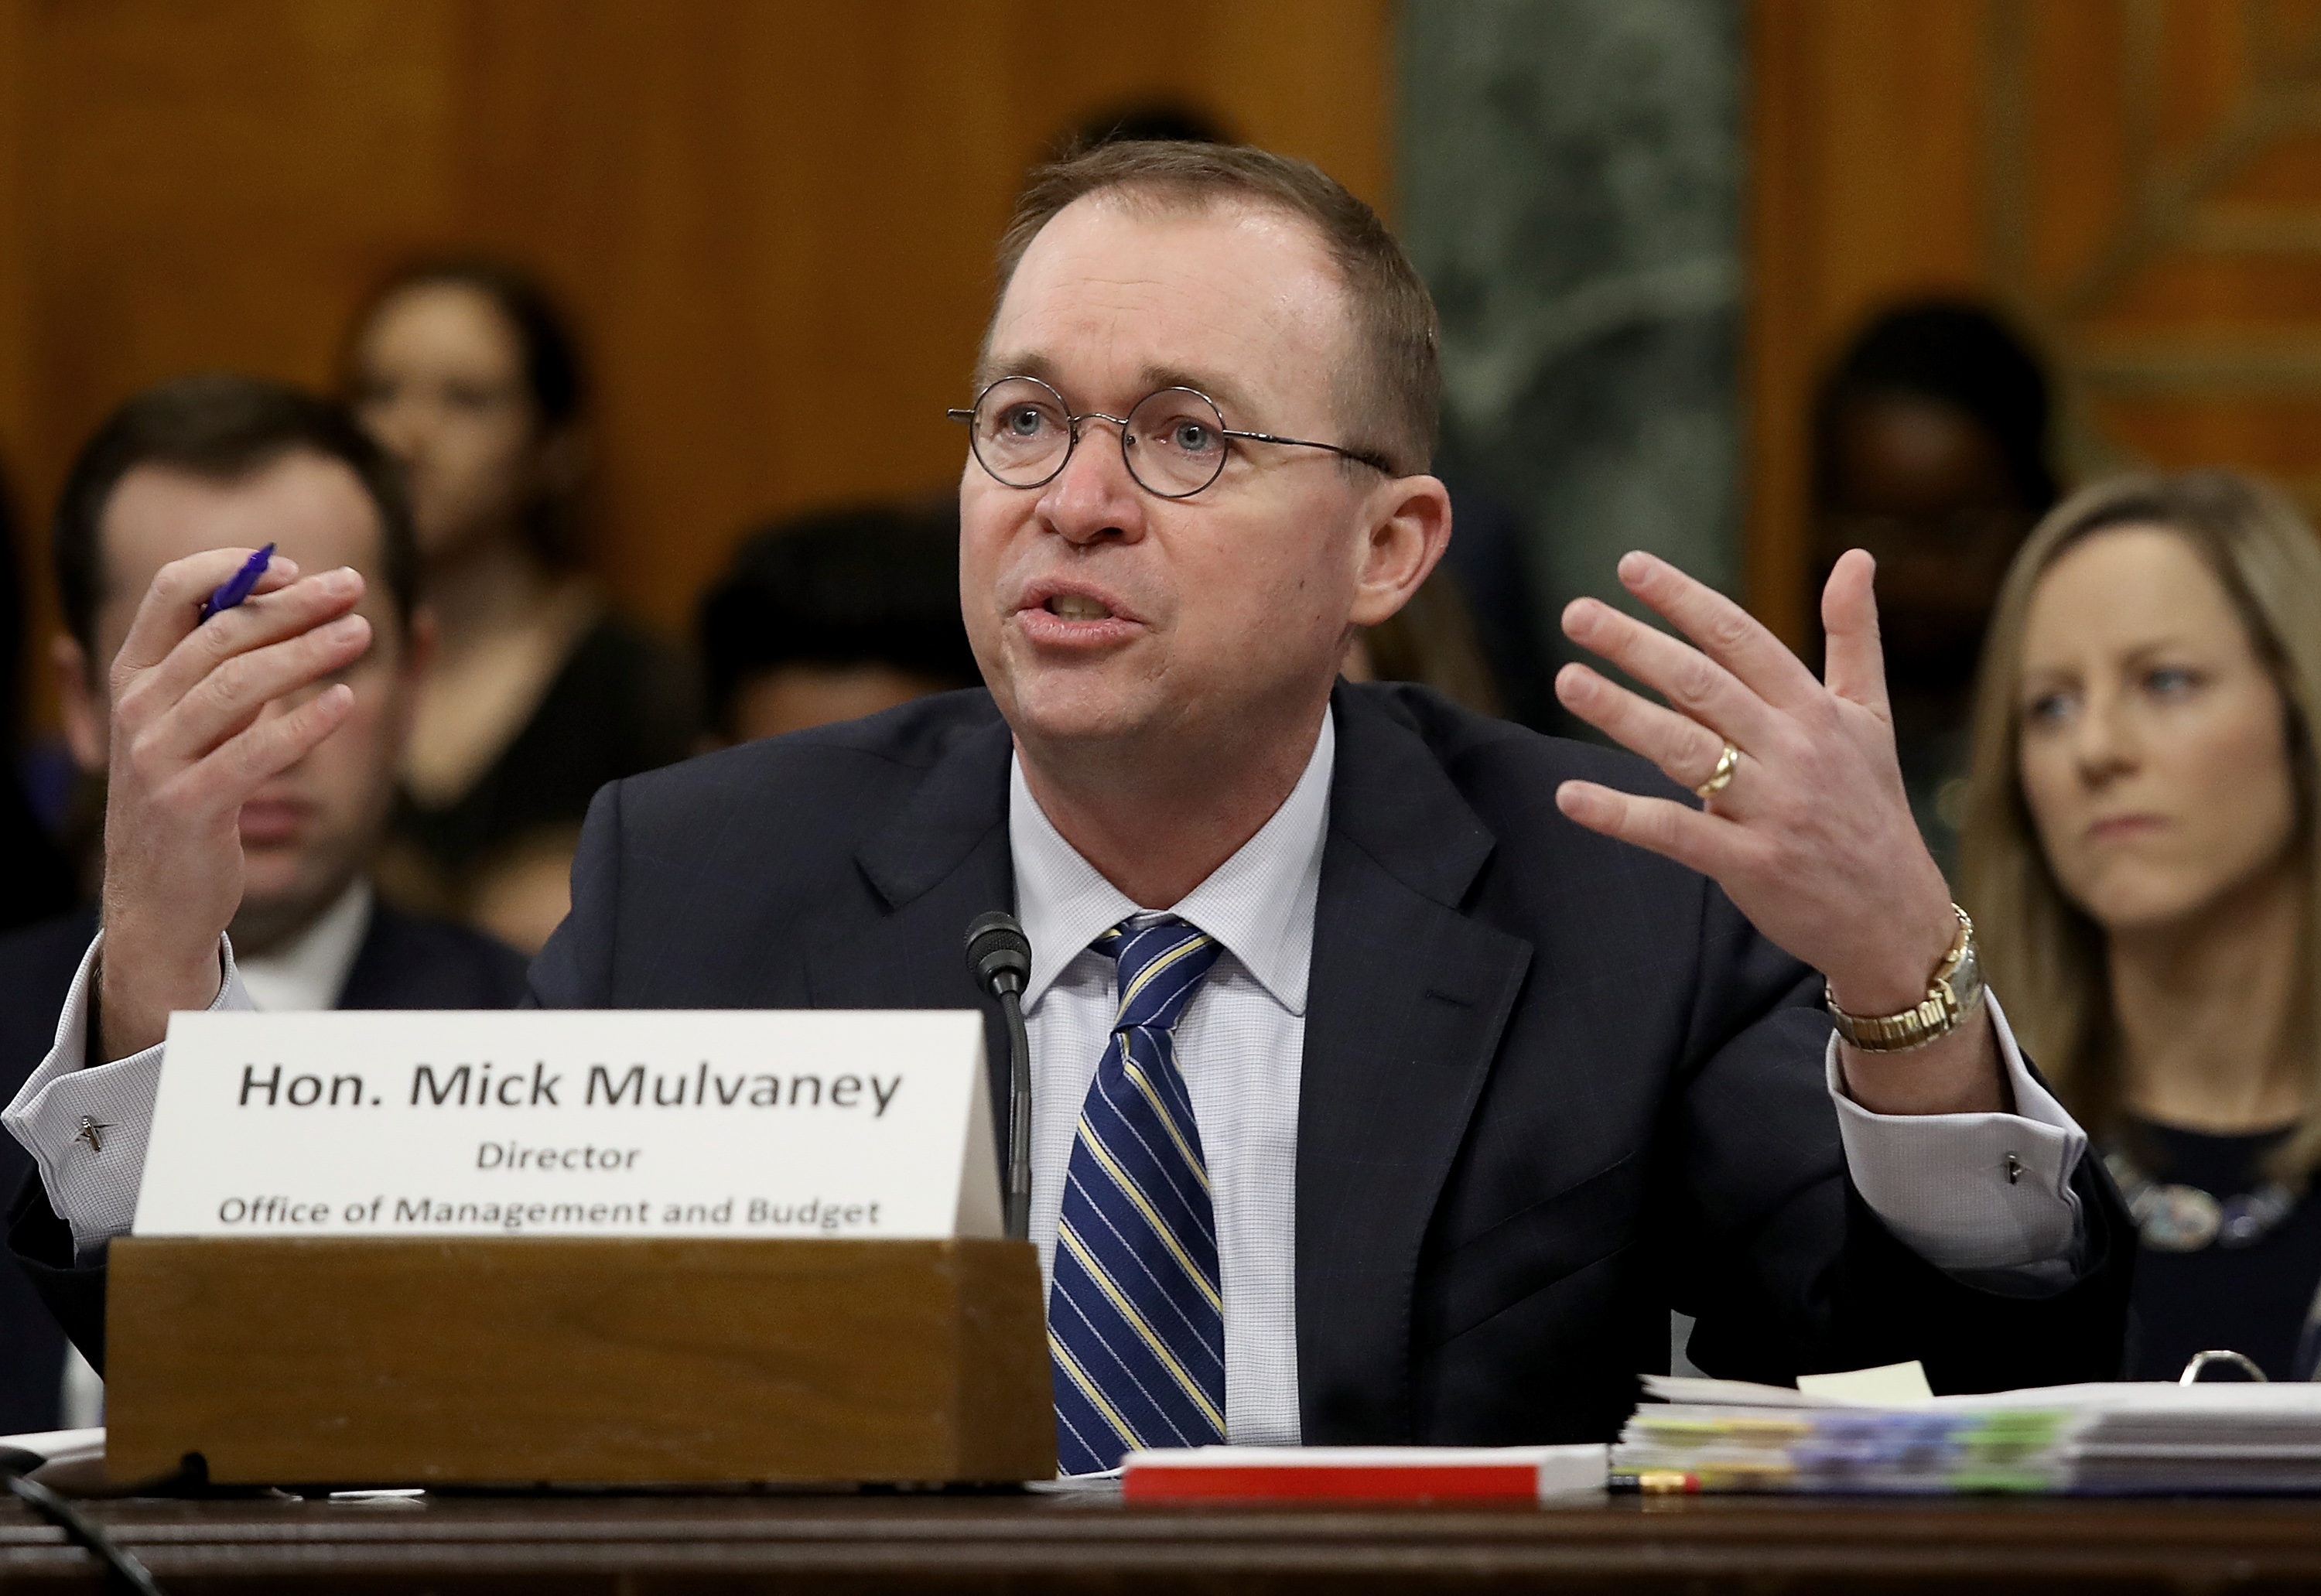 Office of Management and Budget Director Mick Mulvaney testifies before the Senate Budget Committee February 13, 2018 in Washington, DC. (Photo by Win McNamee/Getty Images)